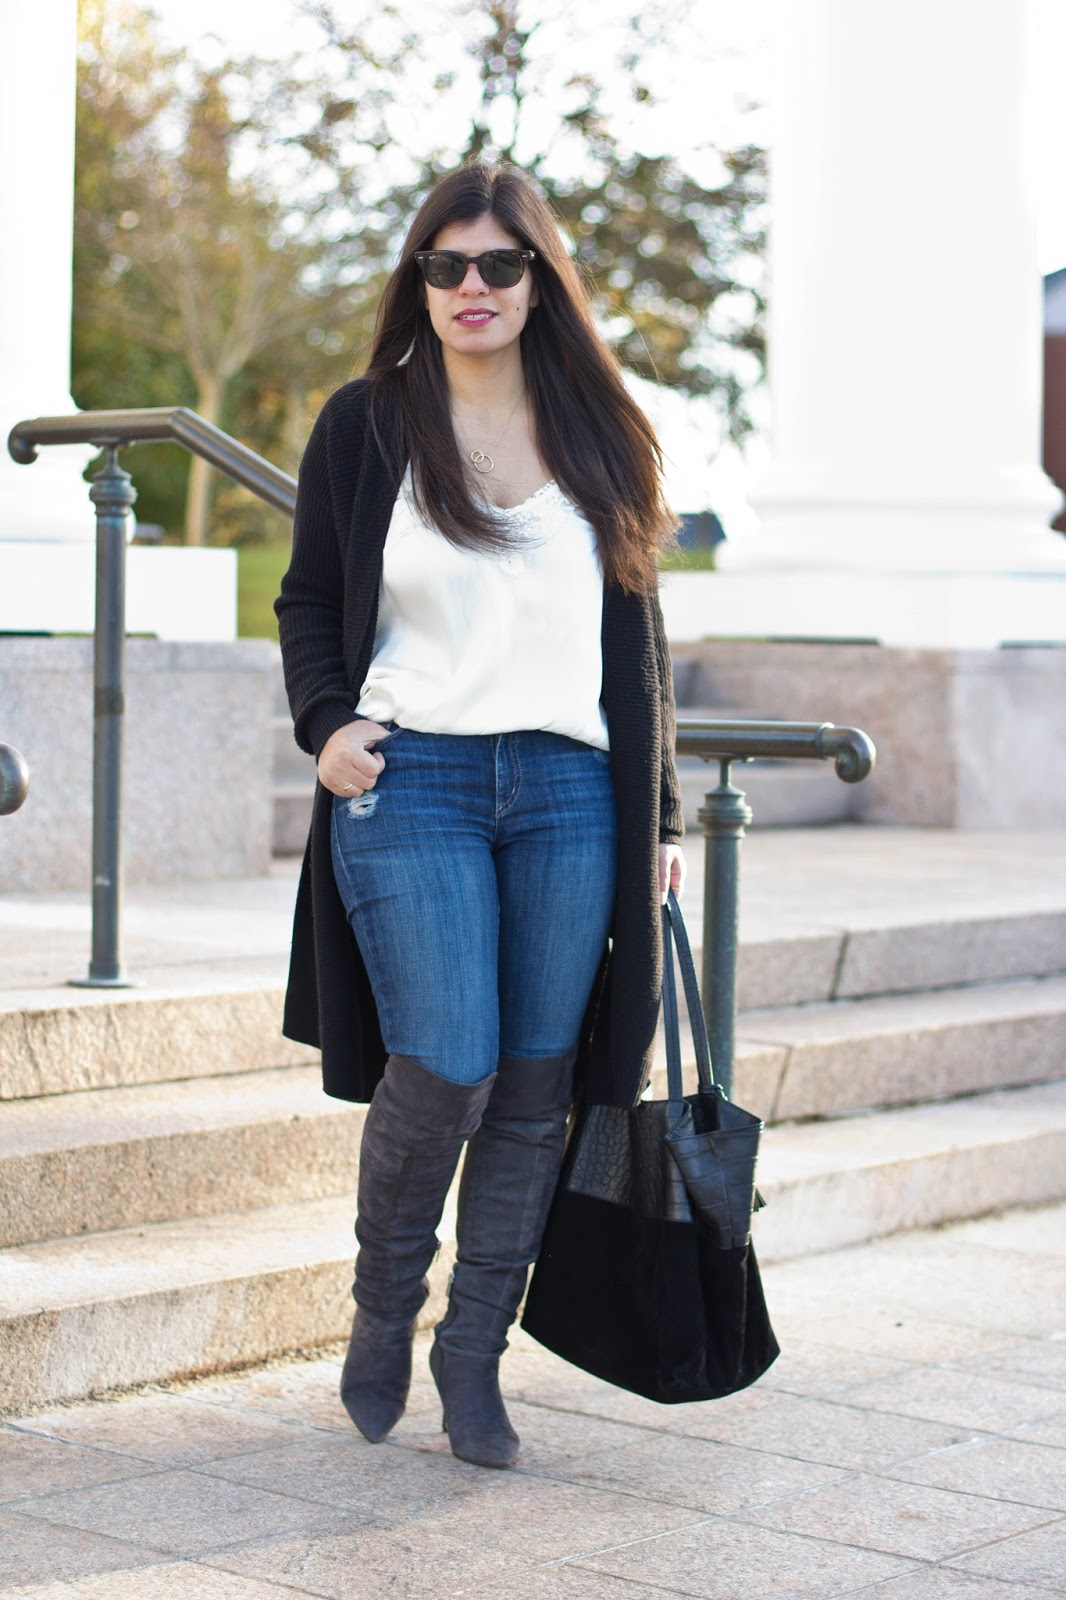 CT Fashion blogger wearing a long black gap cardigan, yoga jeans, lace cami, and grey over the knee boots for winter